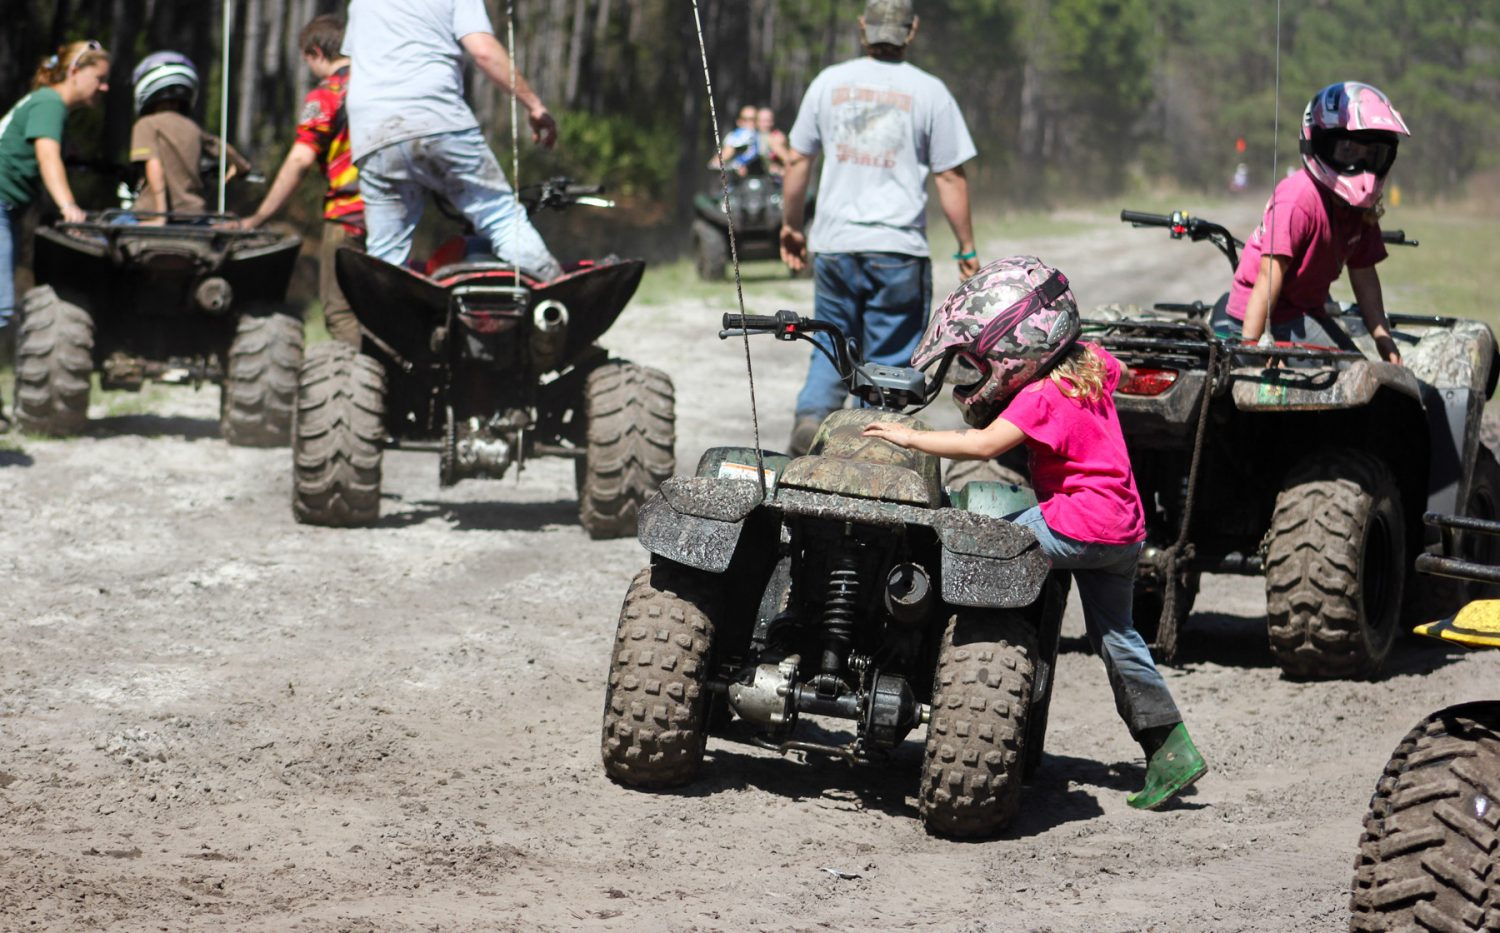 A young girl rides a child-sized four-wheeler with her family on the Hog Waller property on Sunday afternoon, March 2, 2014.